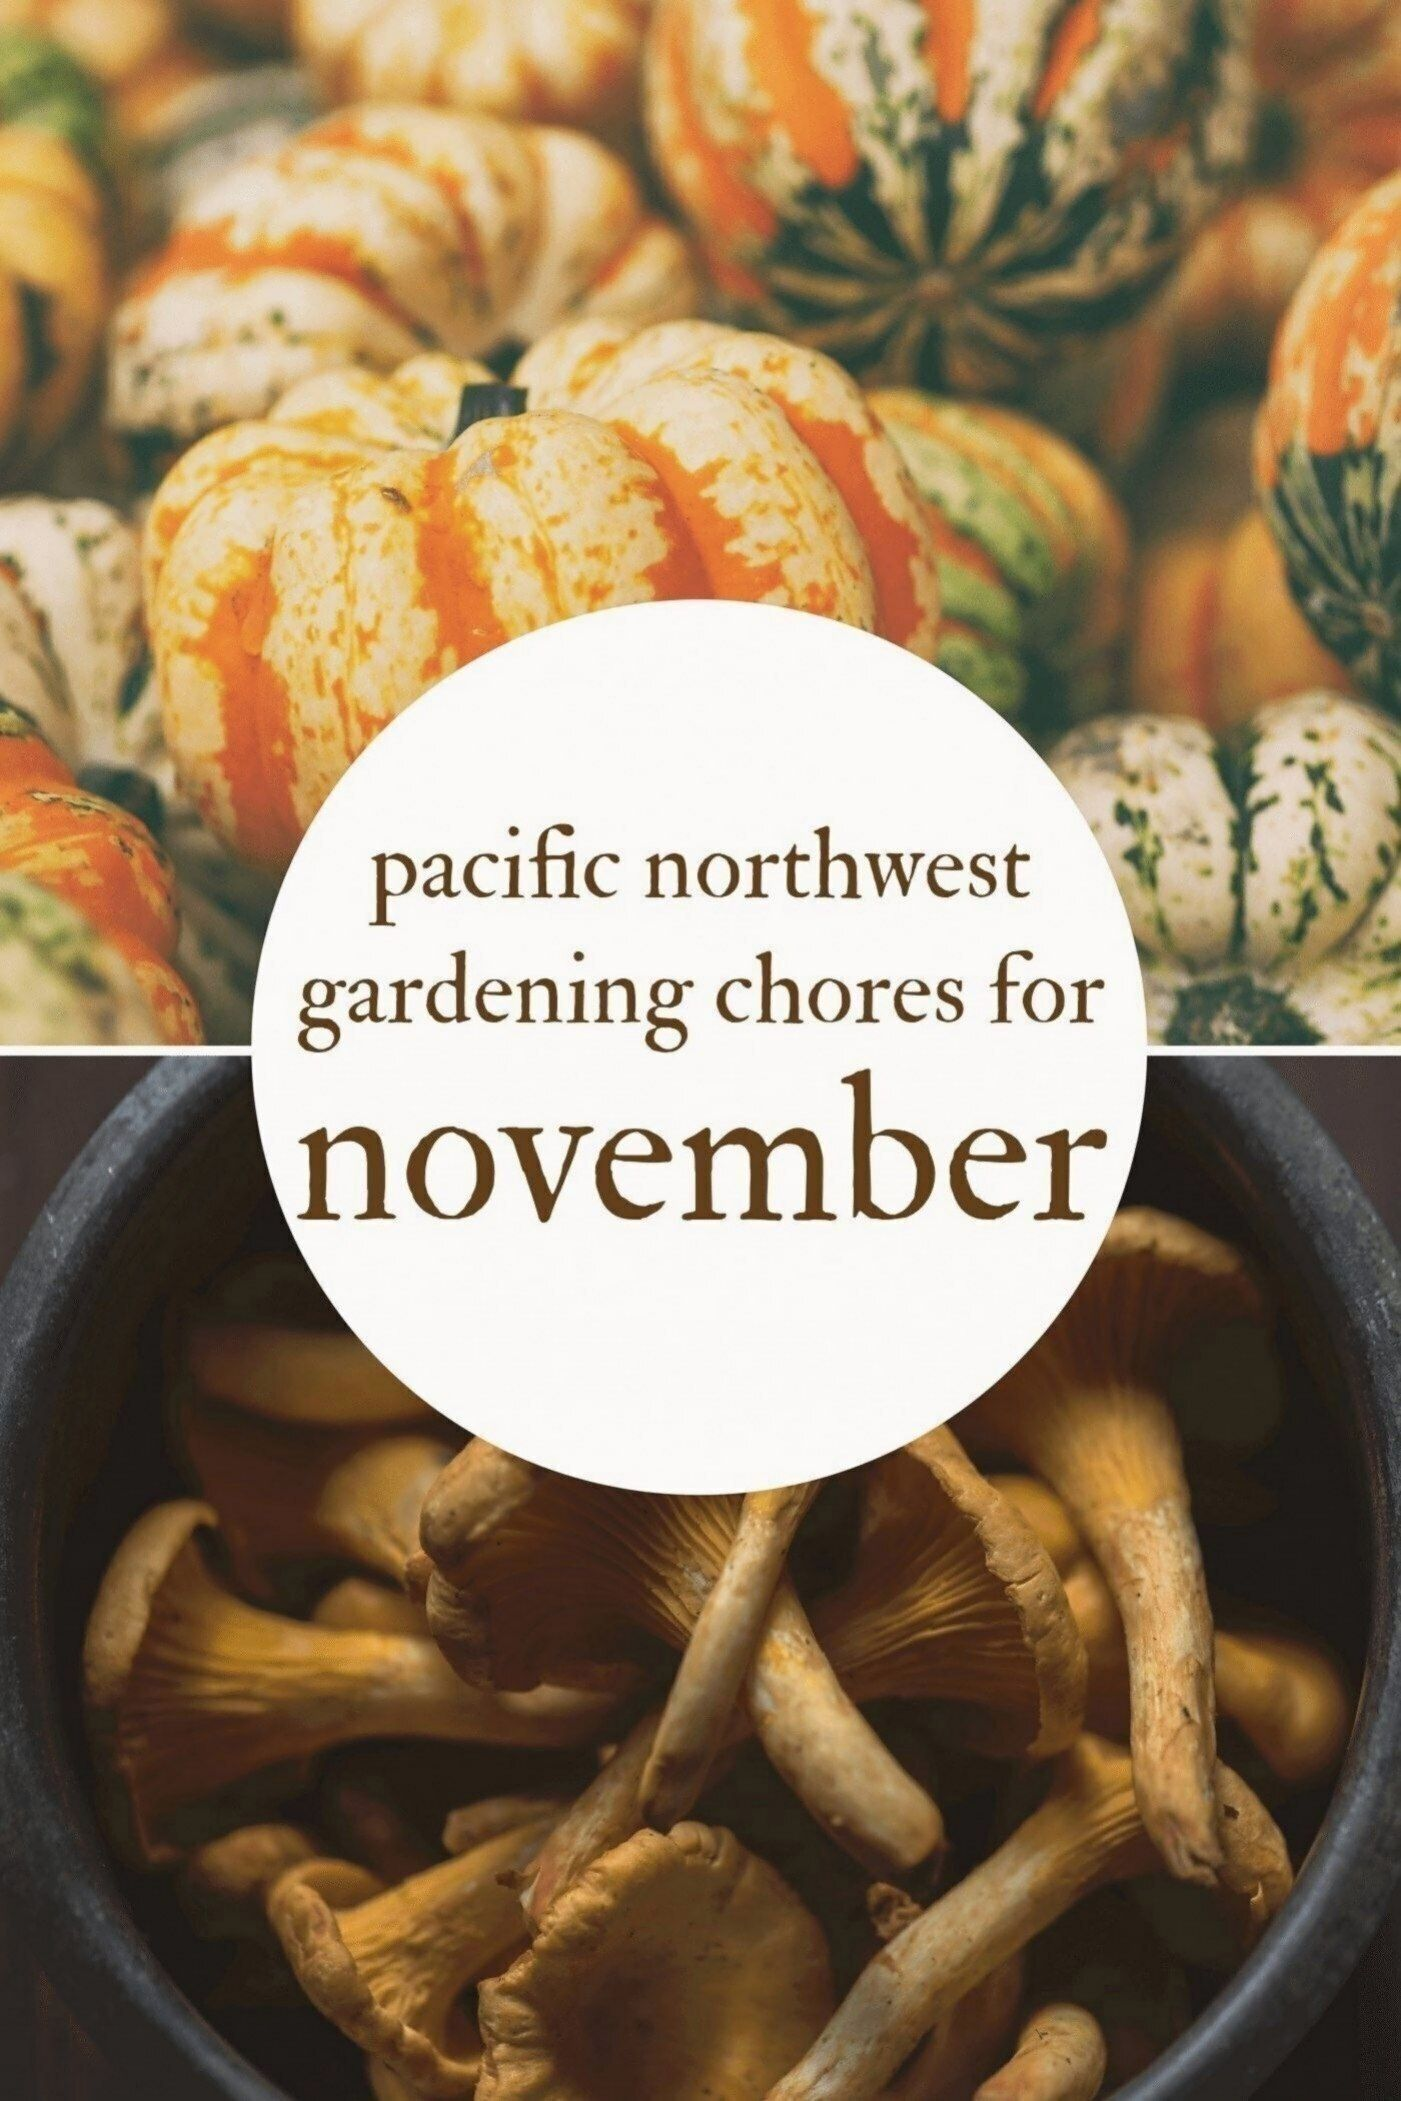 November gardening chores for the pacific northwest.